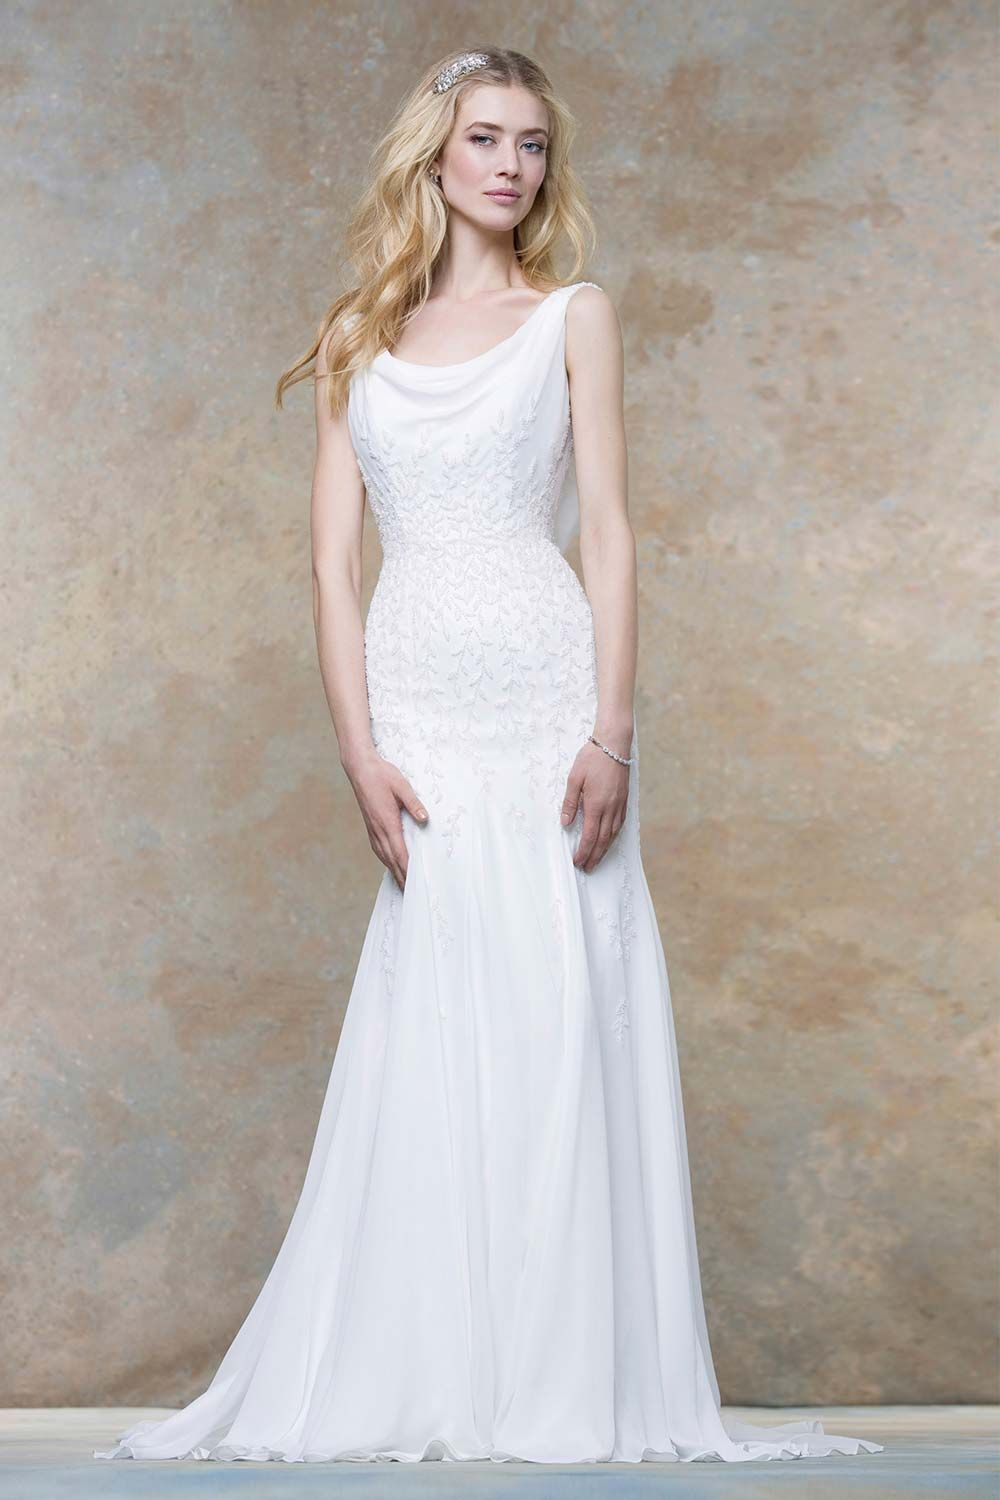 1940s style wedding dresses  Vintage Style Wedding Dresses Gorgeous Gowns Inspired by Past Eras